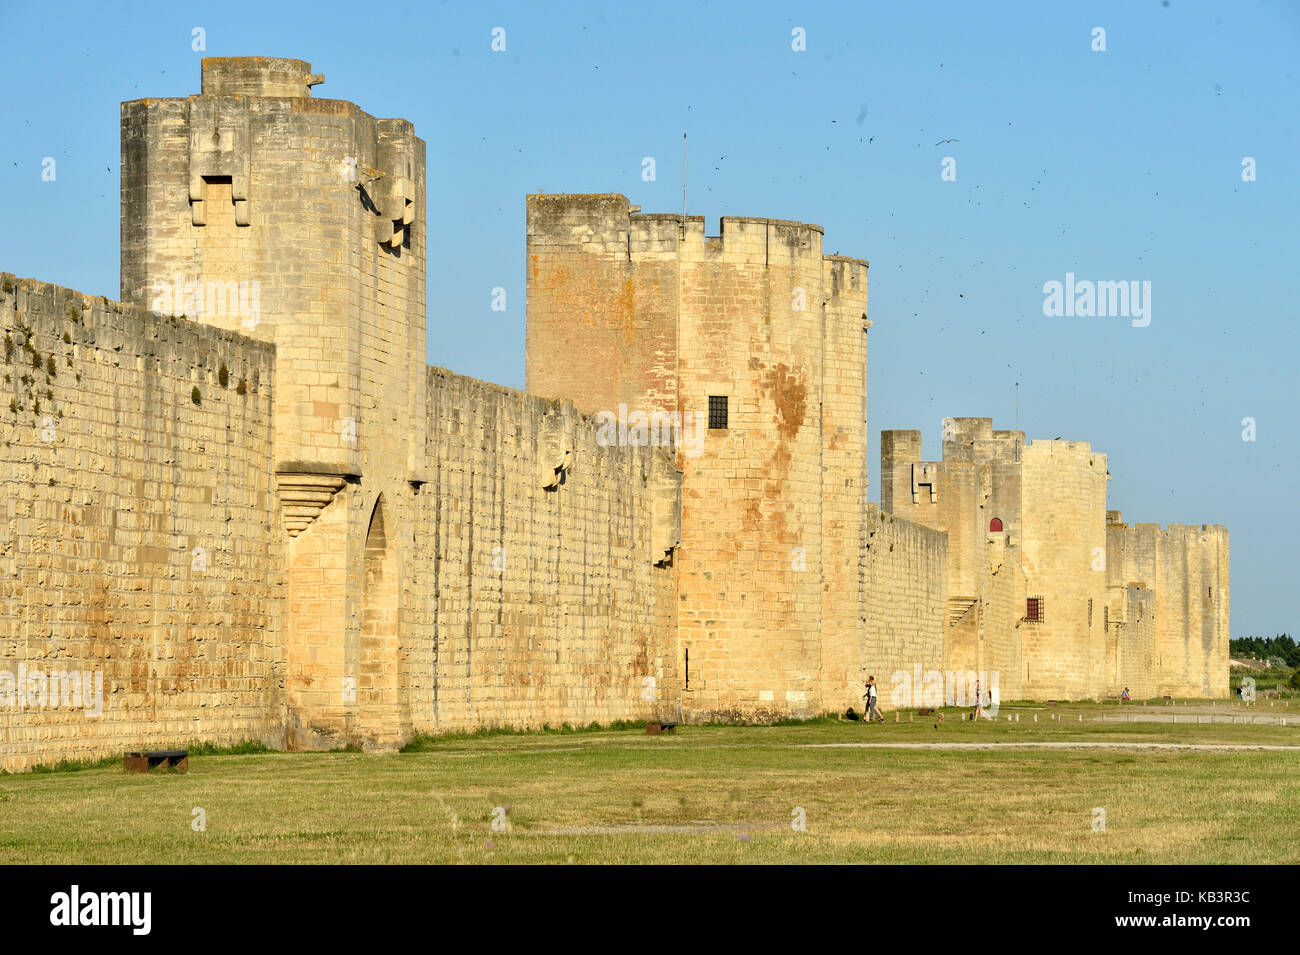 France, Gard, Aigues-Mortes, medieval city, ramparts and fortifications surrounded the city - Stock Image